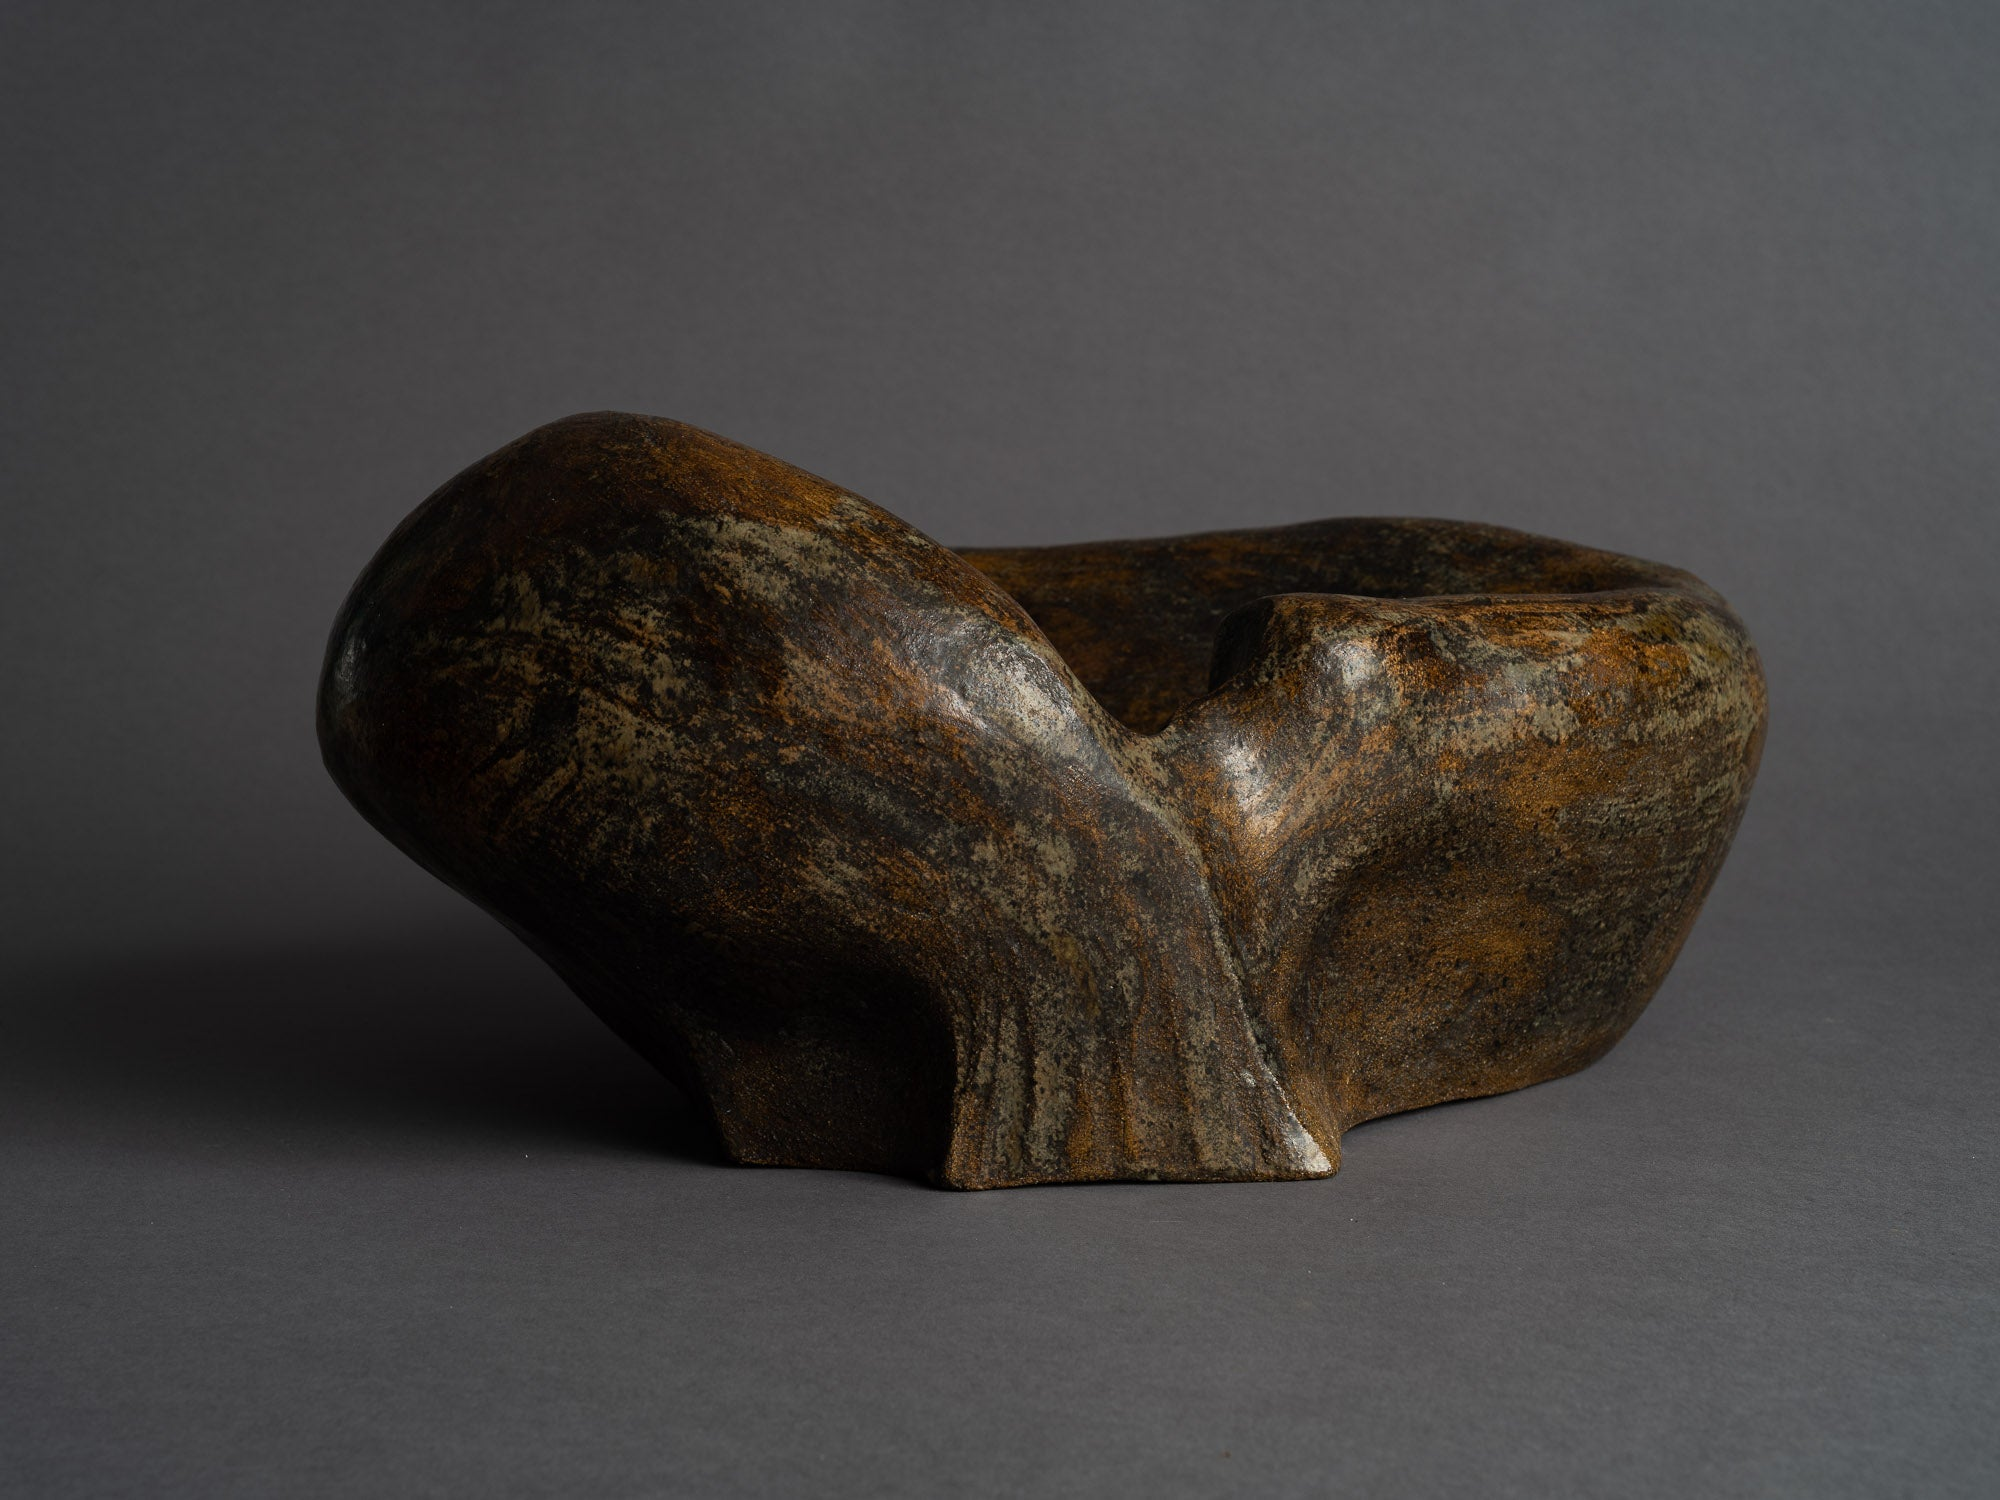 Grande coupe biomorphique en grès de Janine Boyer, France (1959)..Rare large freeform bowl by Janine Boyer, France (1959)